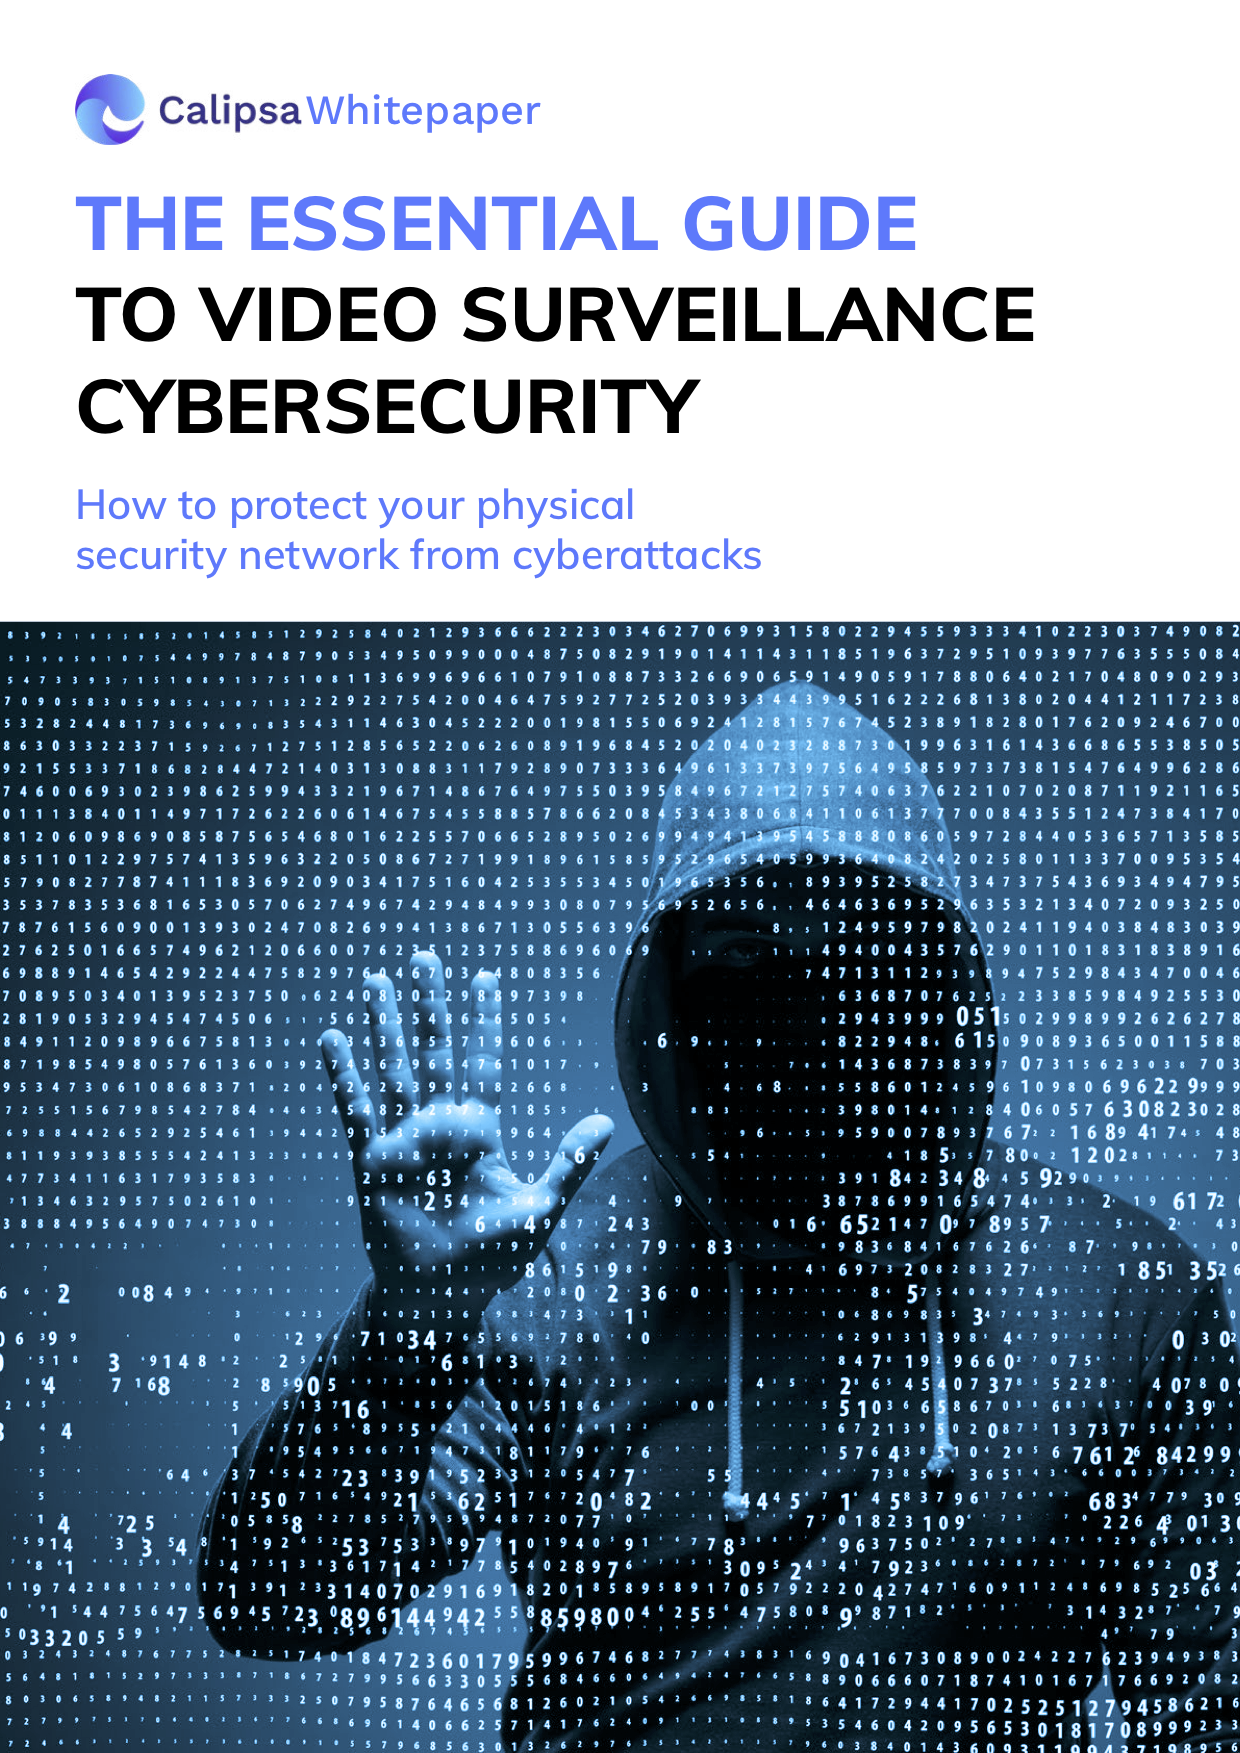 The essential guide to video surveillance cybersecurity-2021